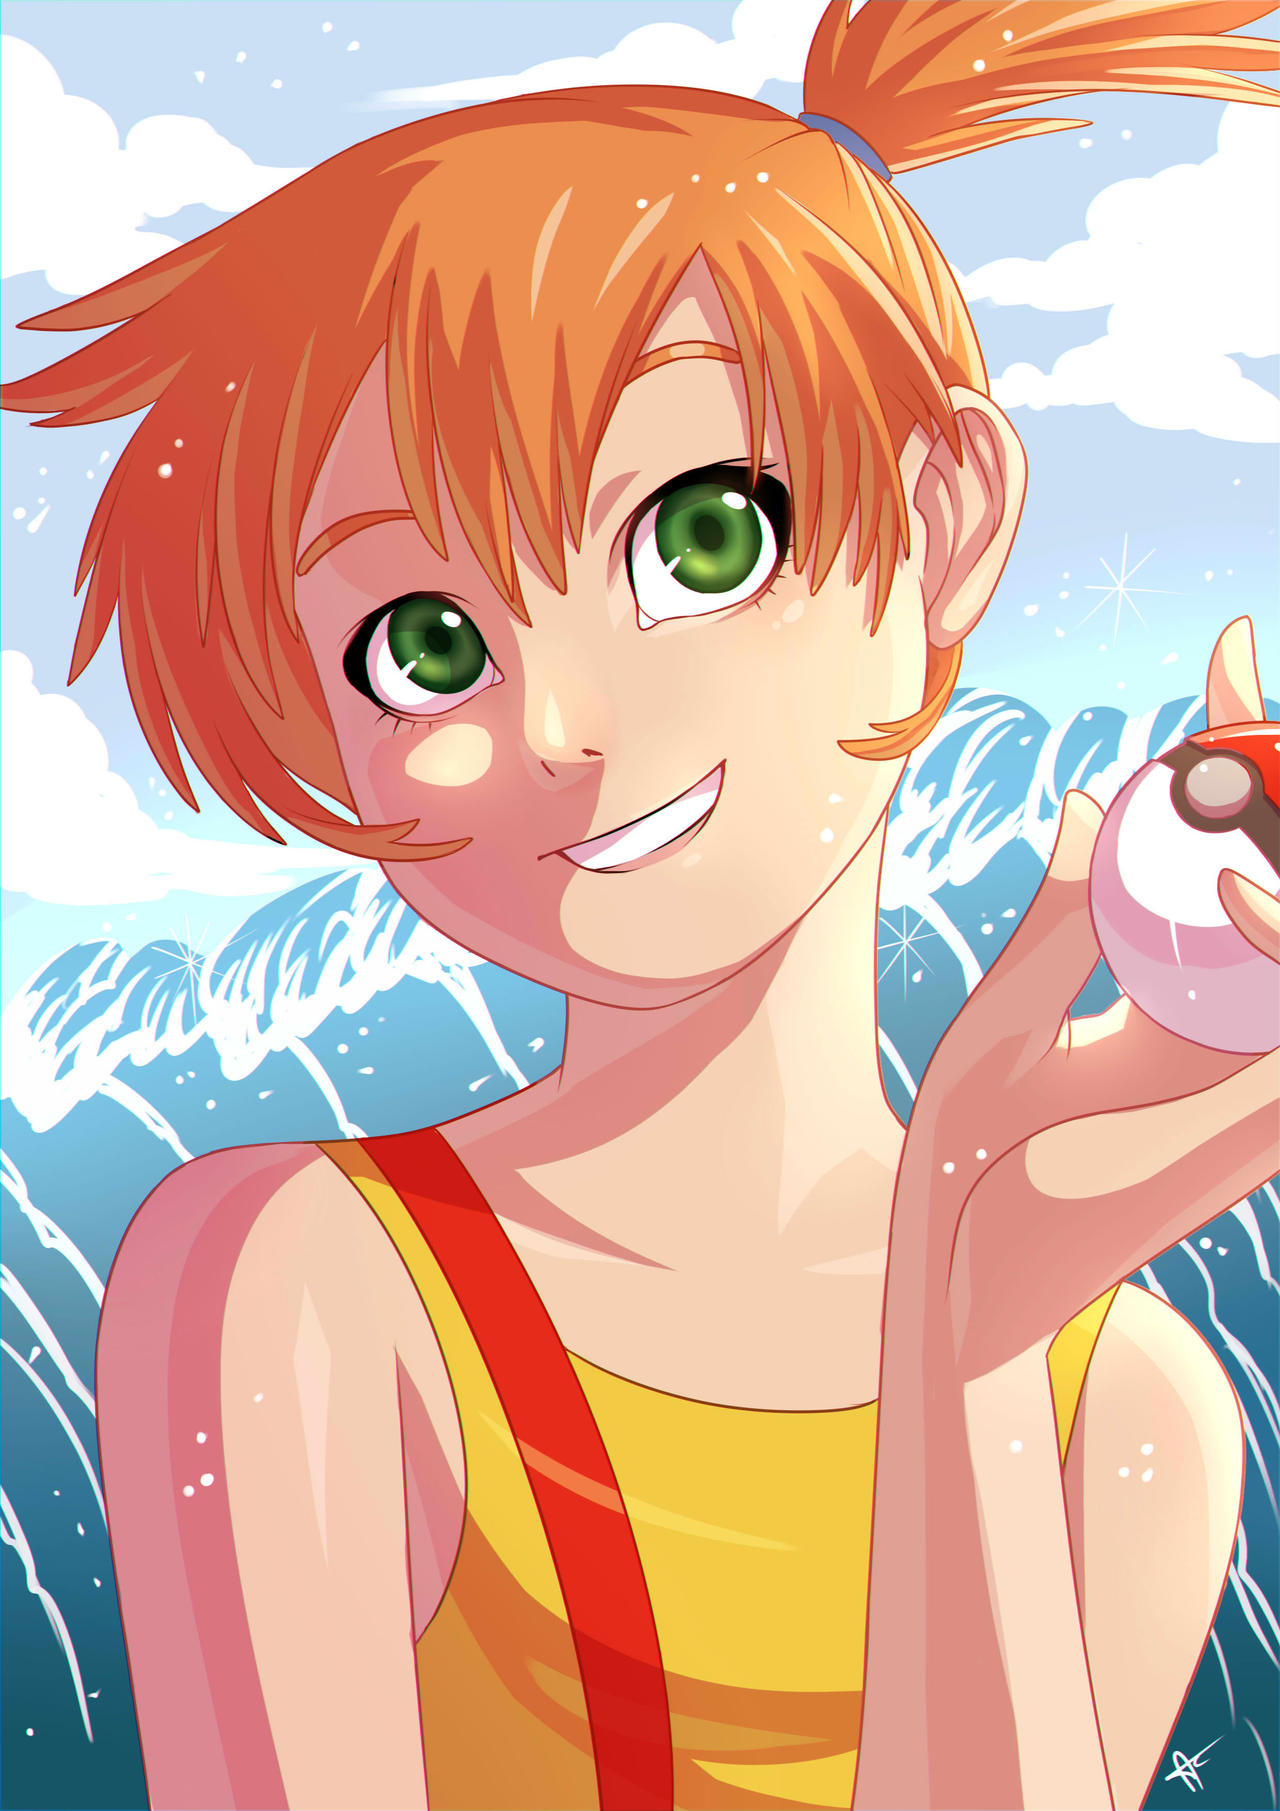 Misty by alanscampos